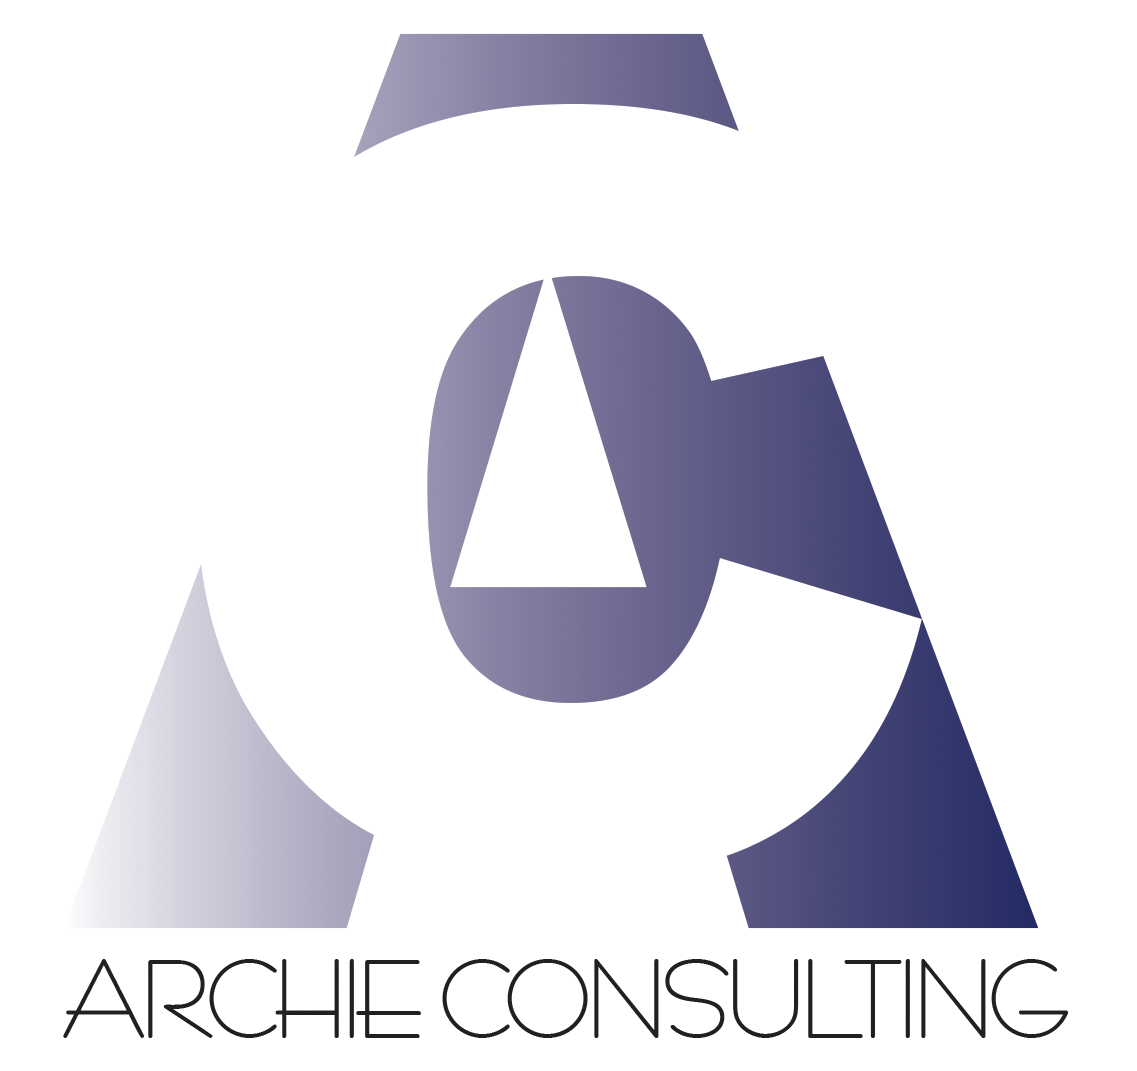 archie consulting v6.png